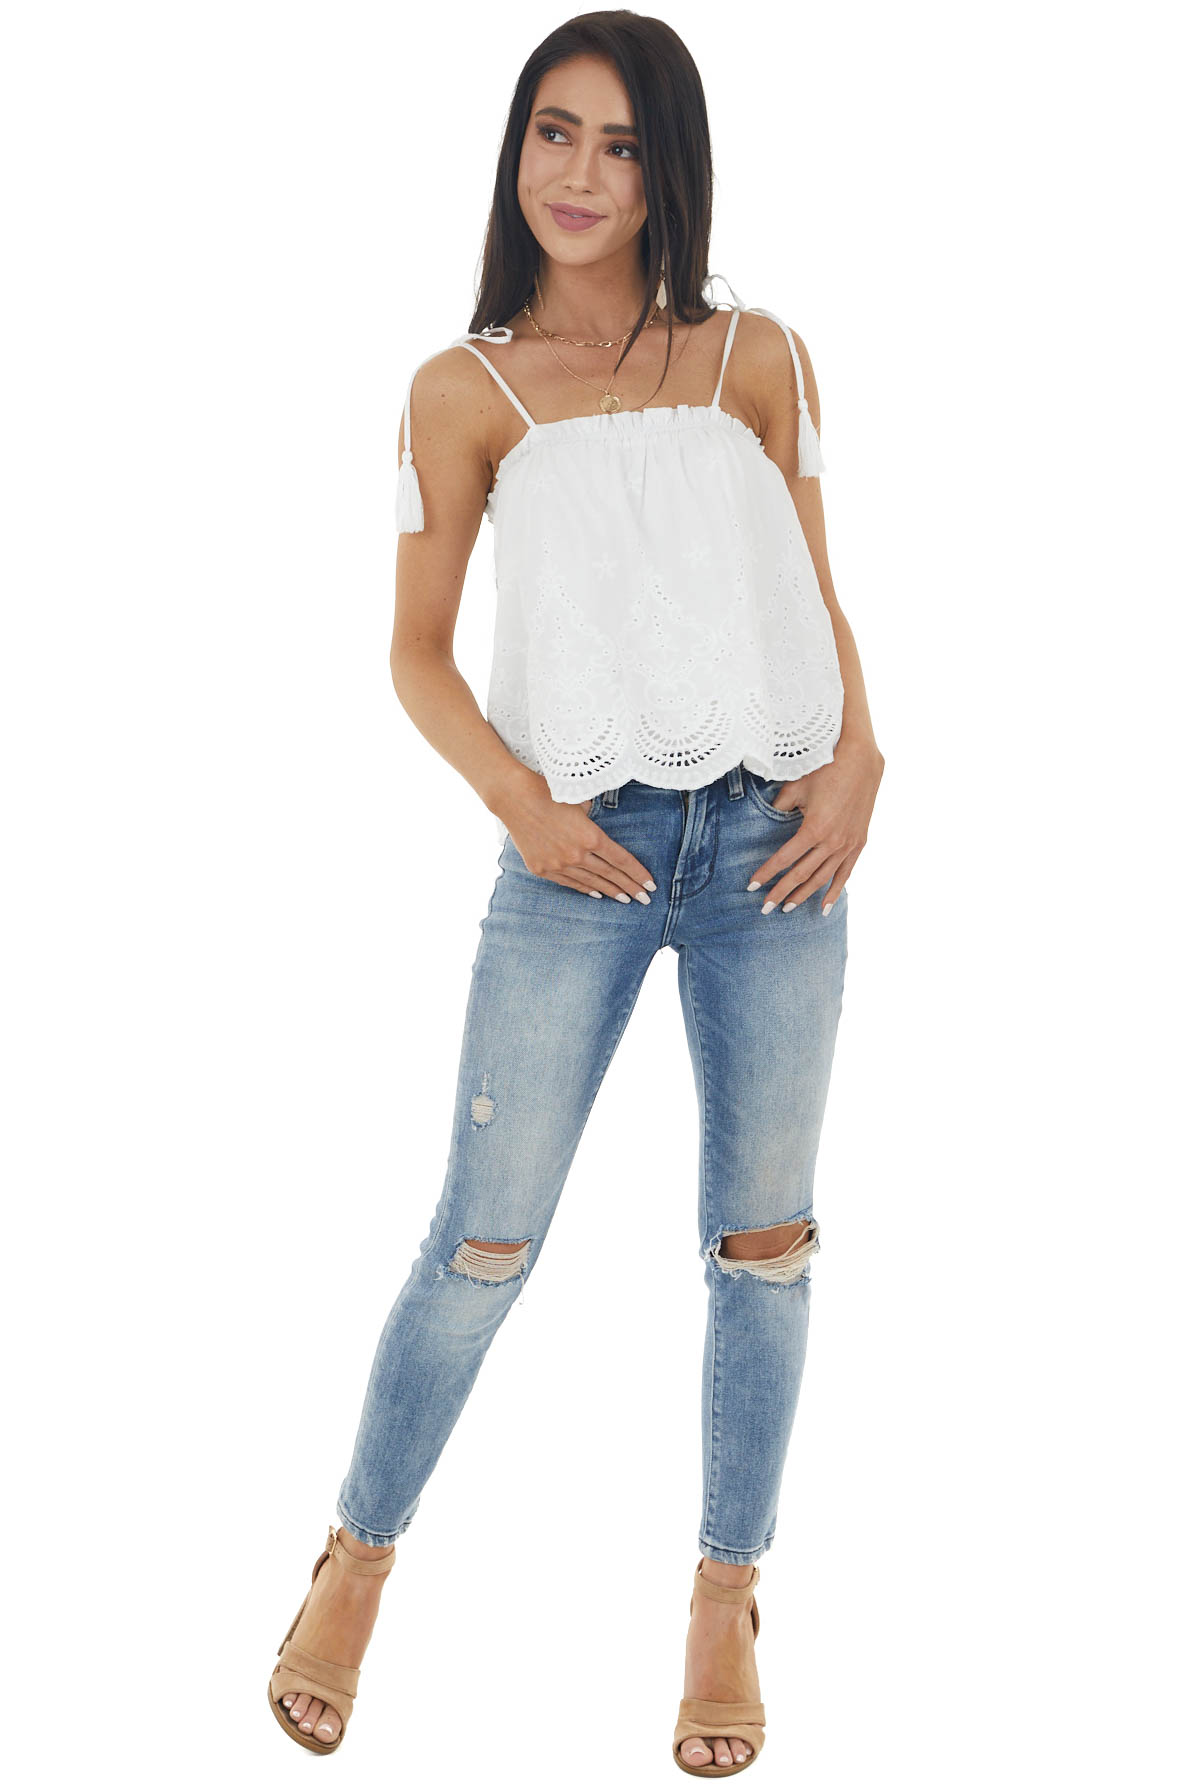 Off White Sleeveless Top with Eyelet Lace and Tassel Details